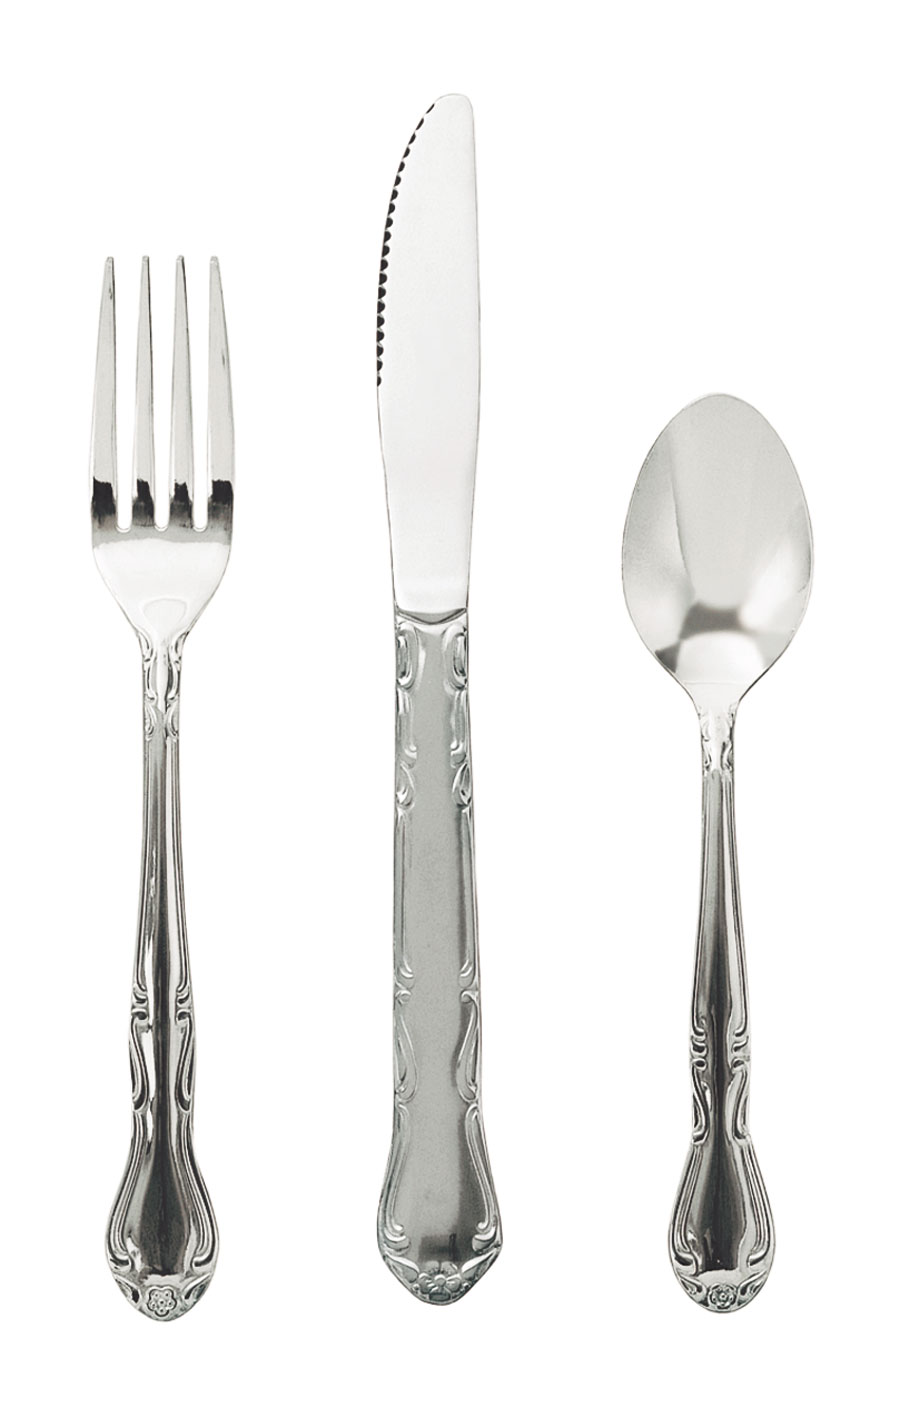 Update International CL-63 Claridge Dessert Spoon, Mirror Polish  - 1 doz